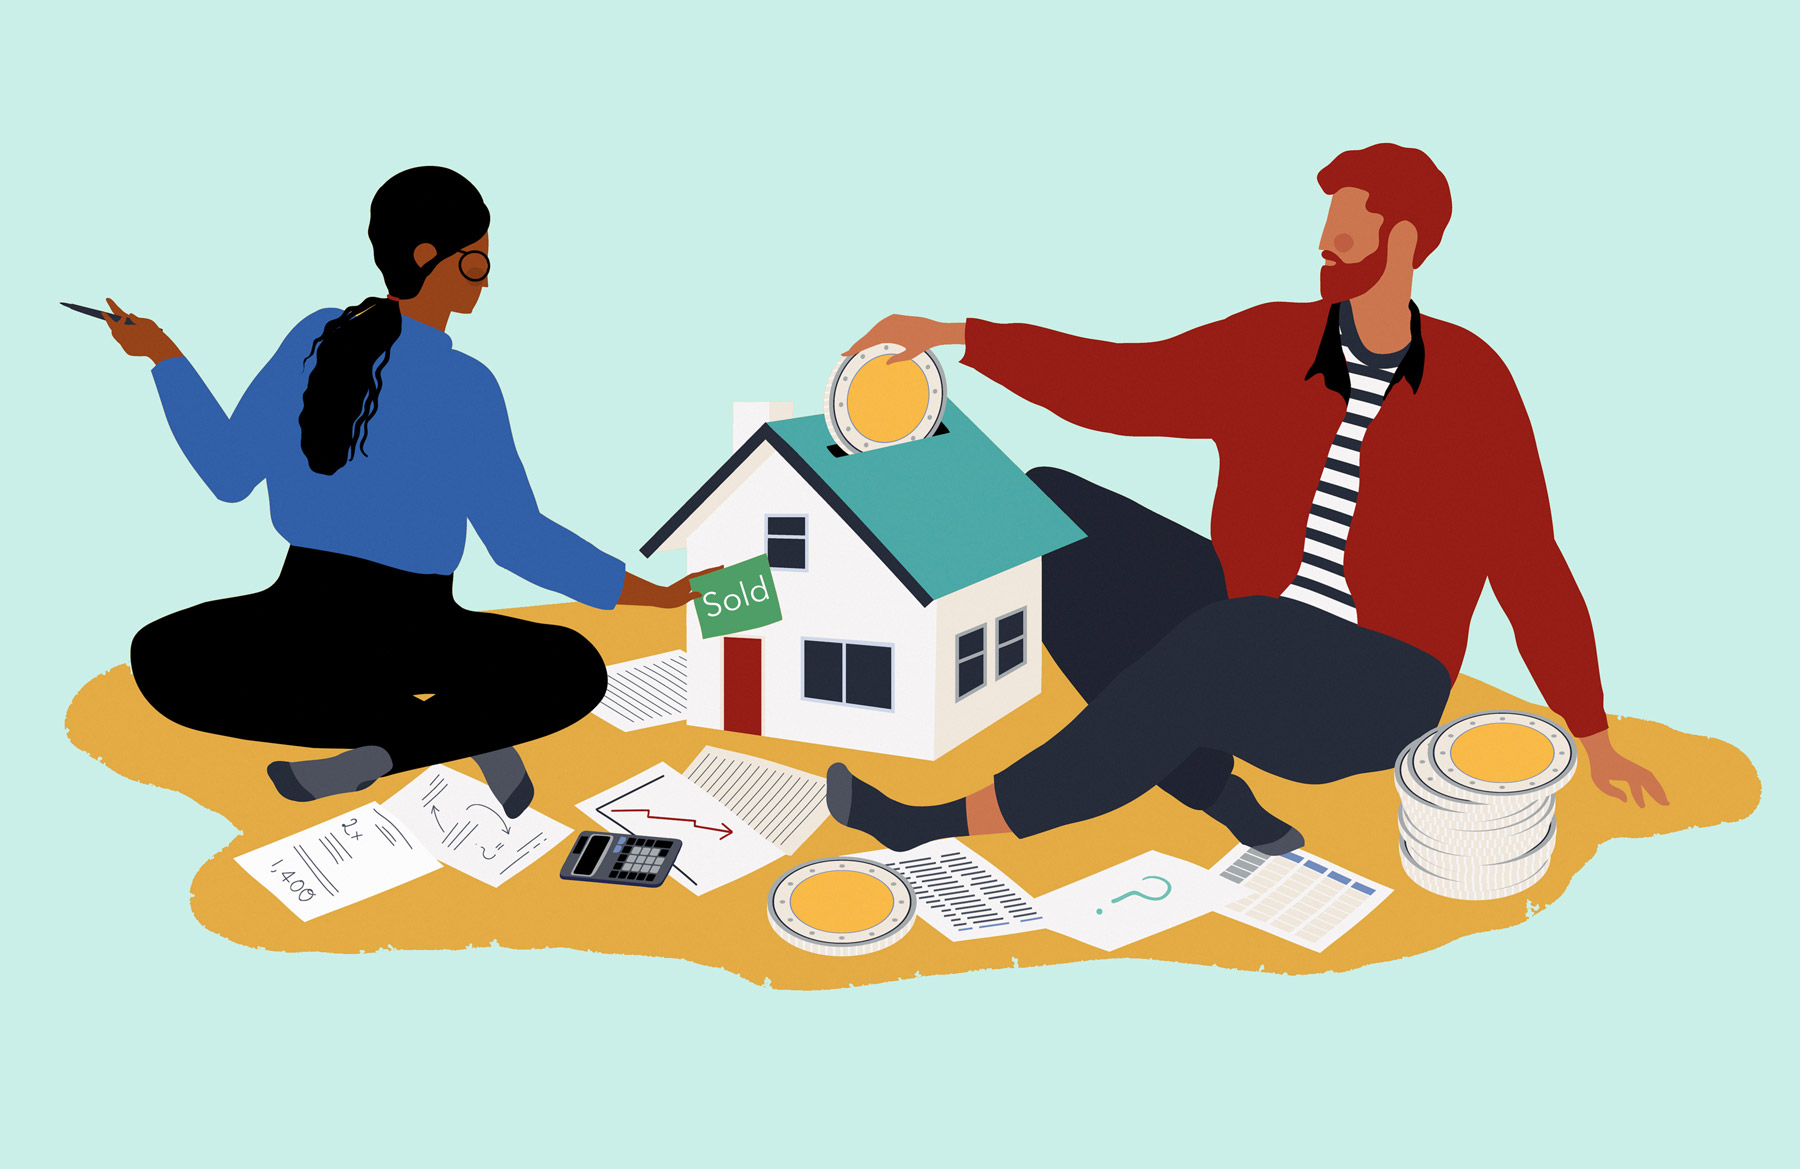 Down Payment On A House >> How Most People Pay For A Down Payment On A House Real Simple